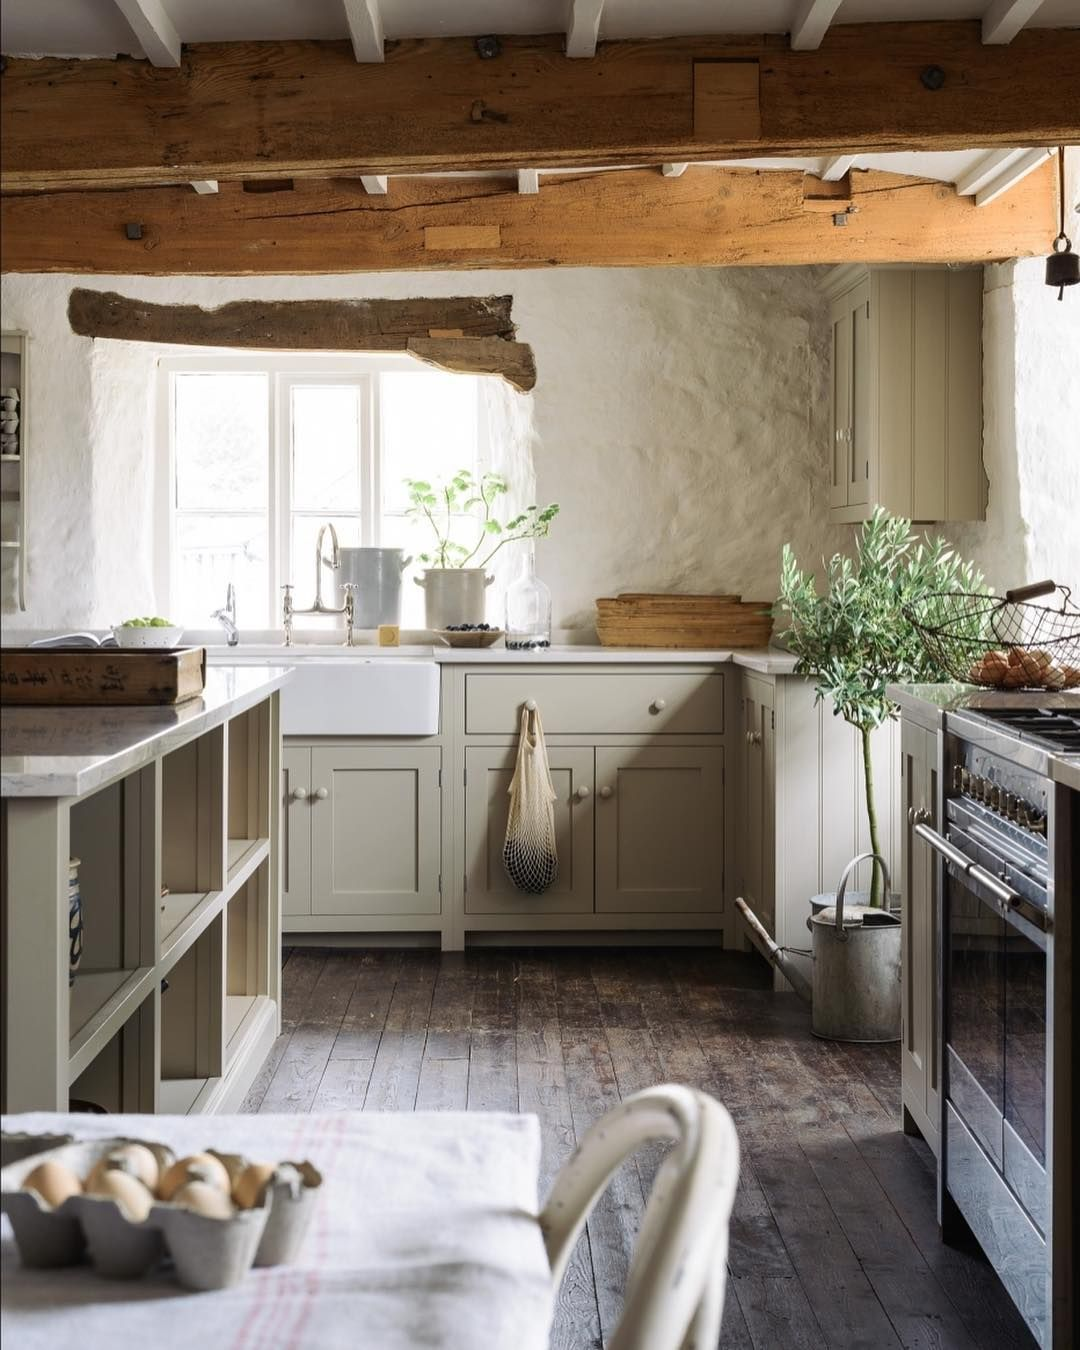 What Makes The Modern Country Style So Appealing Is That It Is Not A Mass  Produced Generic Look Anymore. It Has Become Carefully Considered,  Beautifully And ...